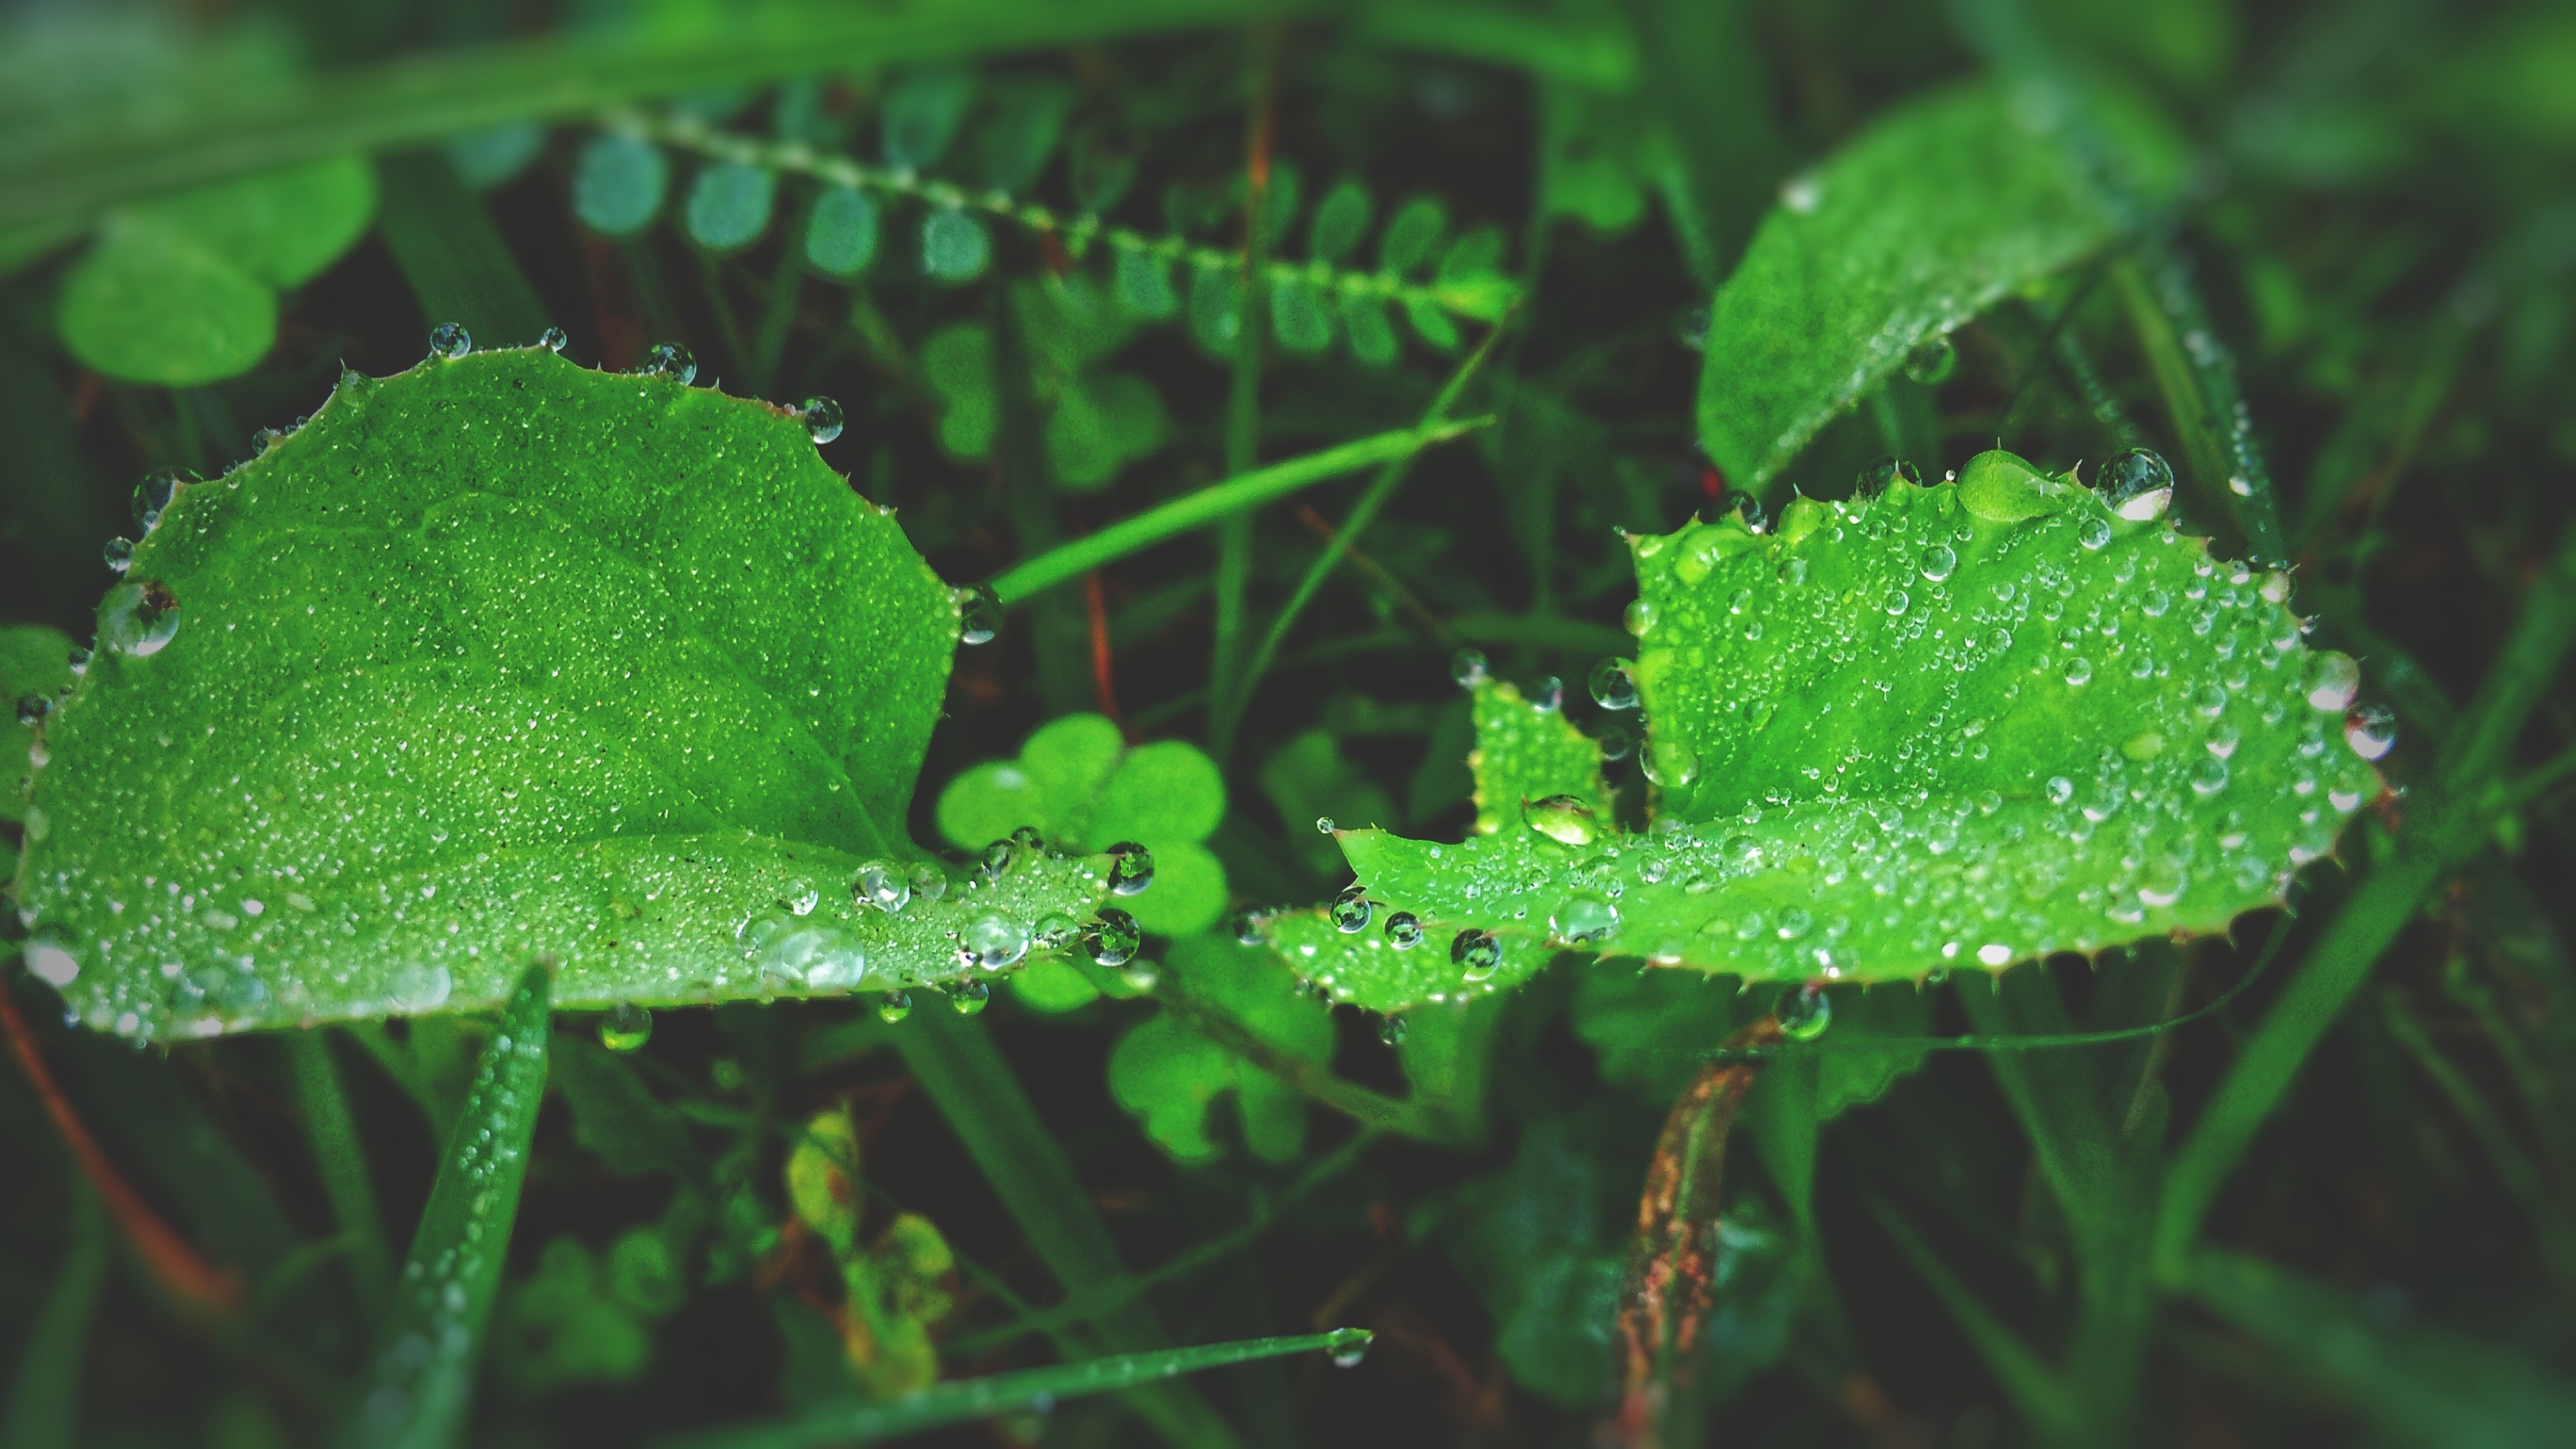 3840x2160 Green Leaf Plant With Raindrops